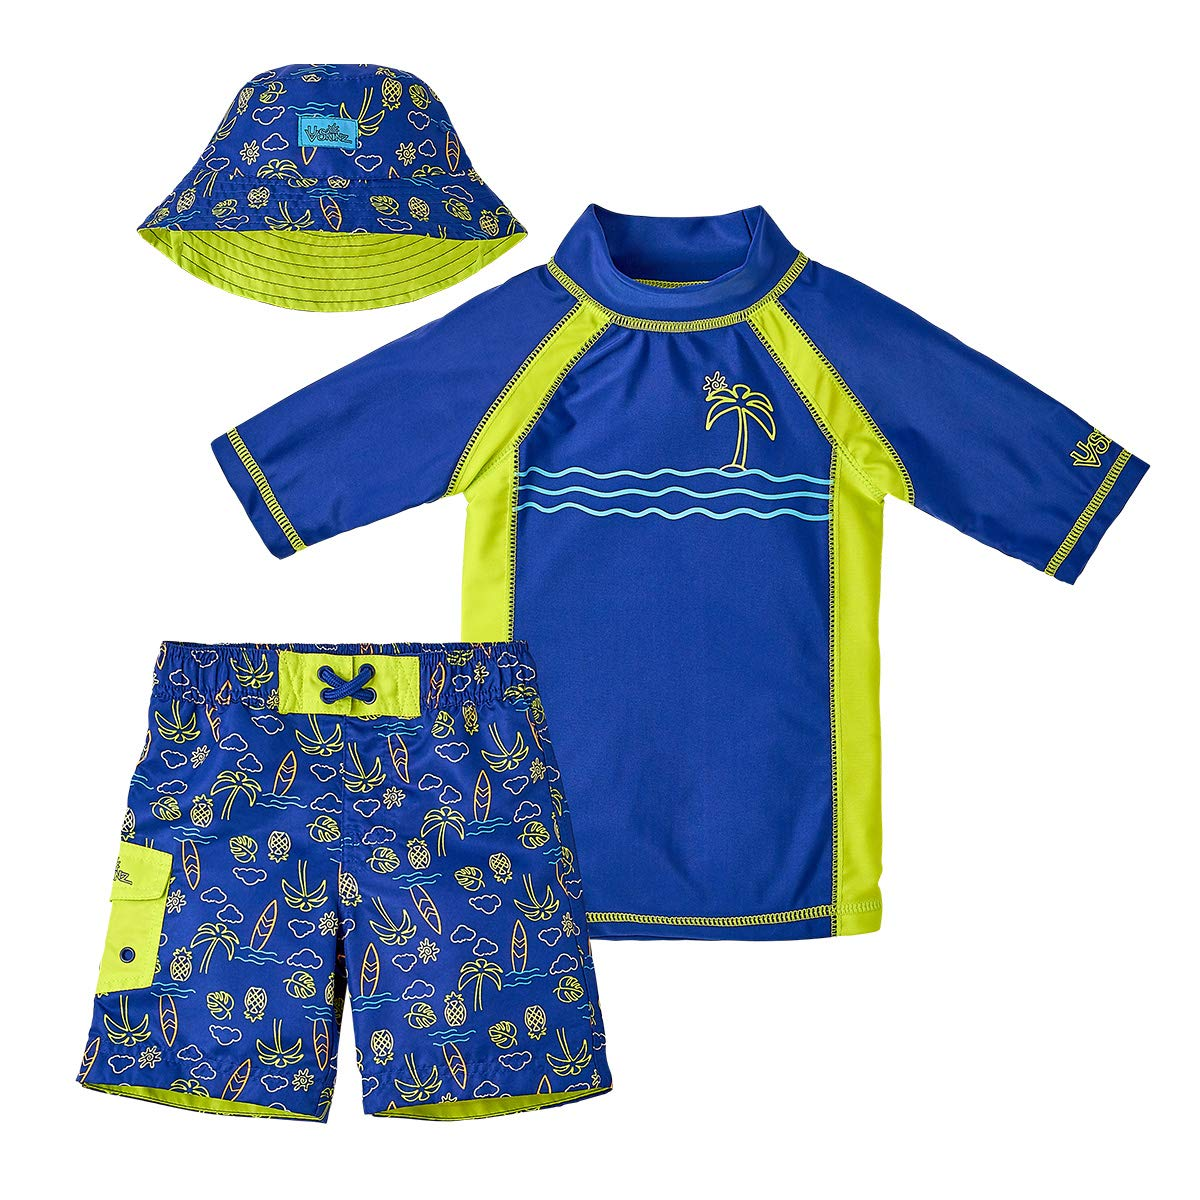 UPF 50 UV SKINZ Boys 3-Piece Swim Set Sun Protection